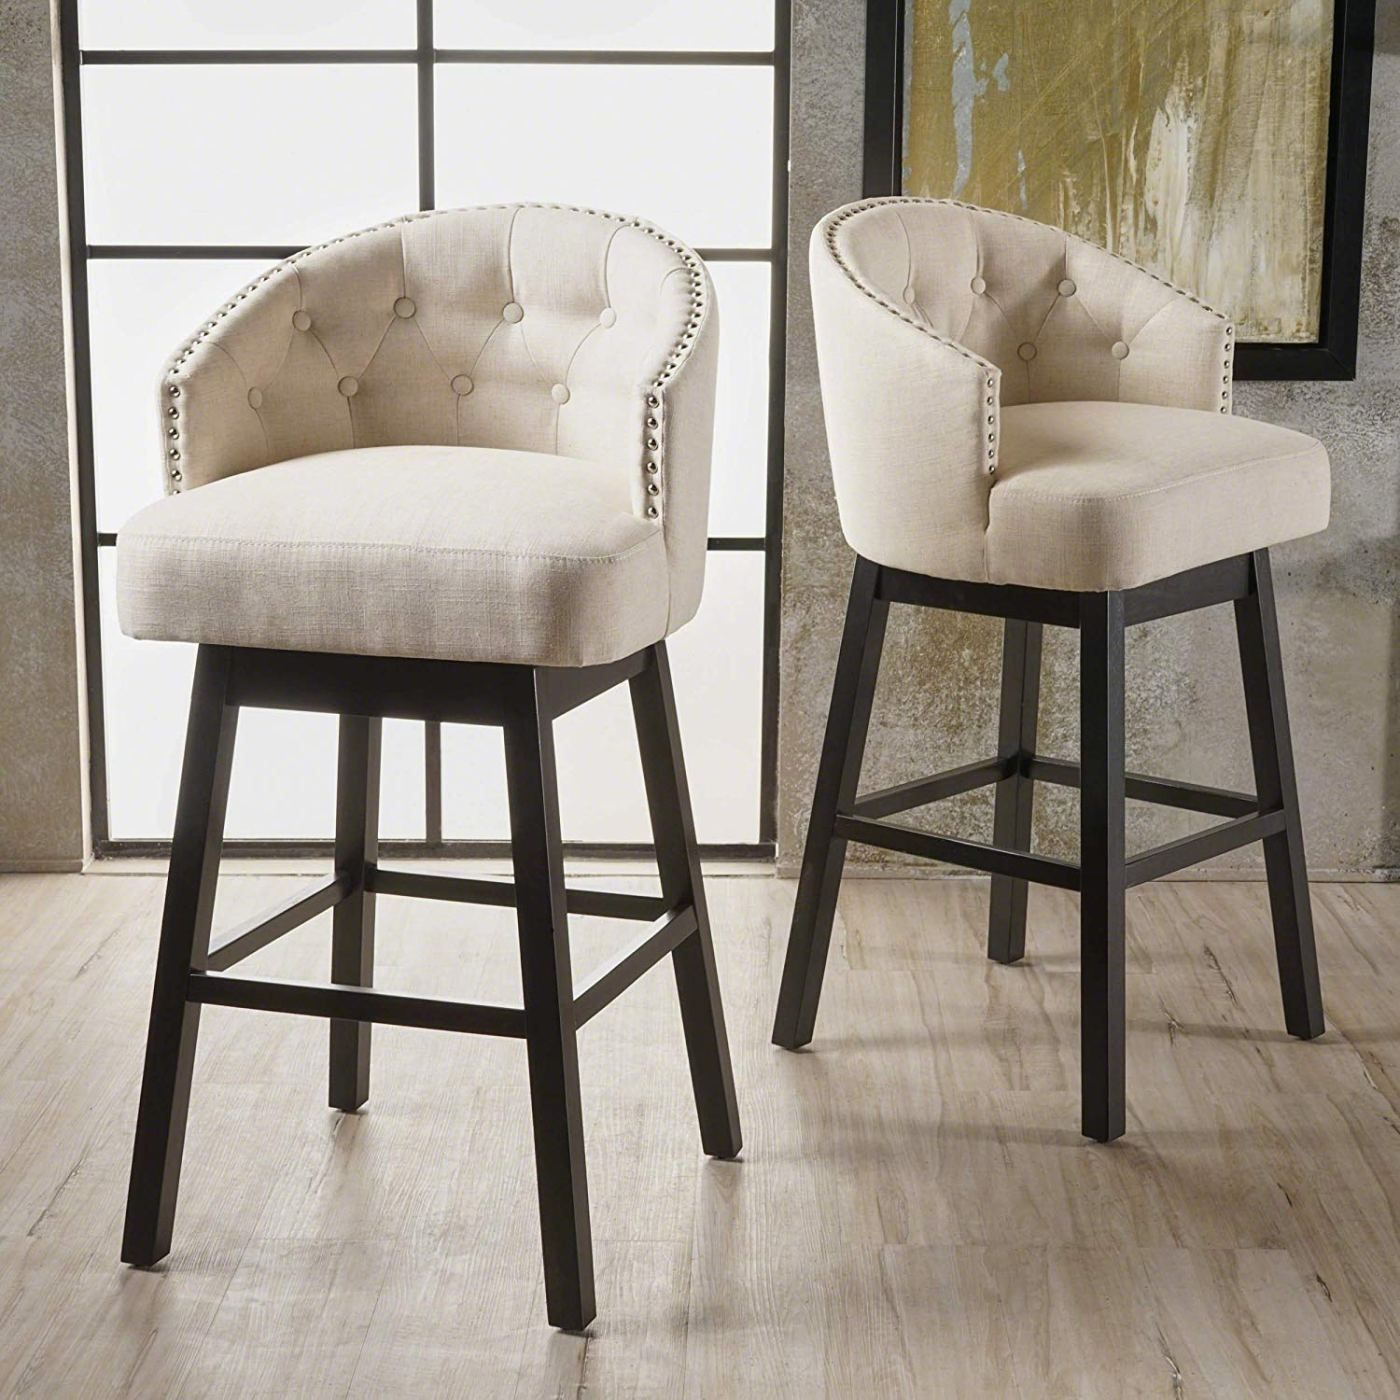 10 Best Selling Swivel Bar Stools With Back On Amazon In 2020 In 2020 Bar Stools With Backs Swivel Bar Stools Bar Stools